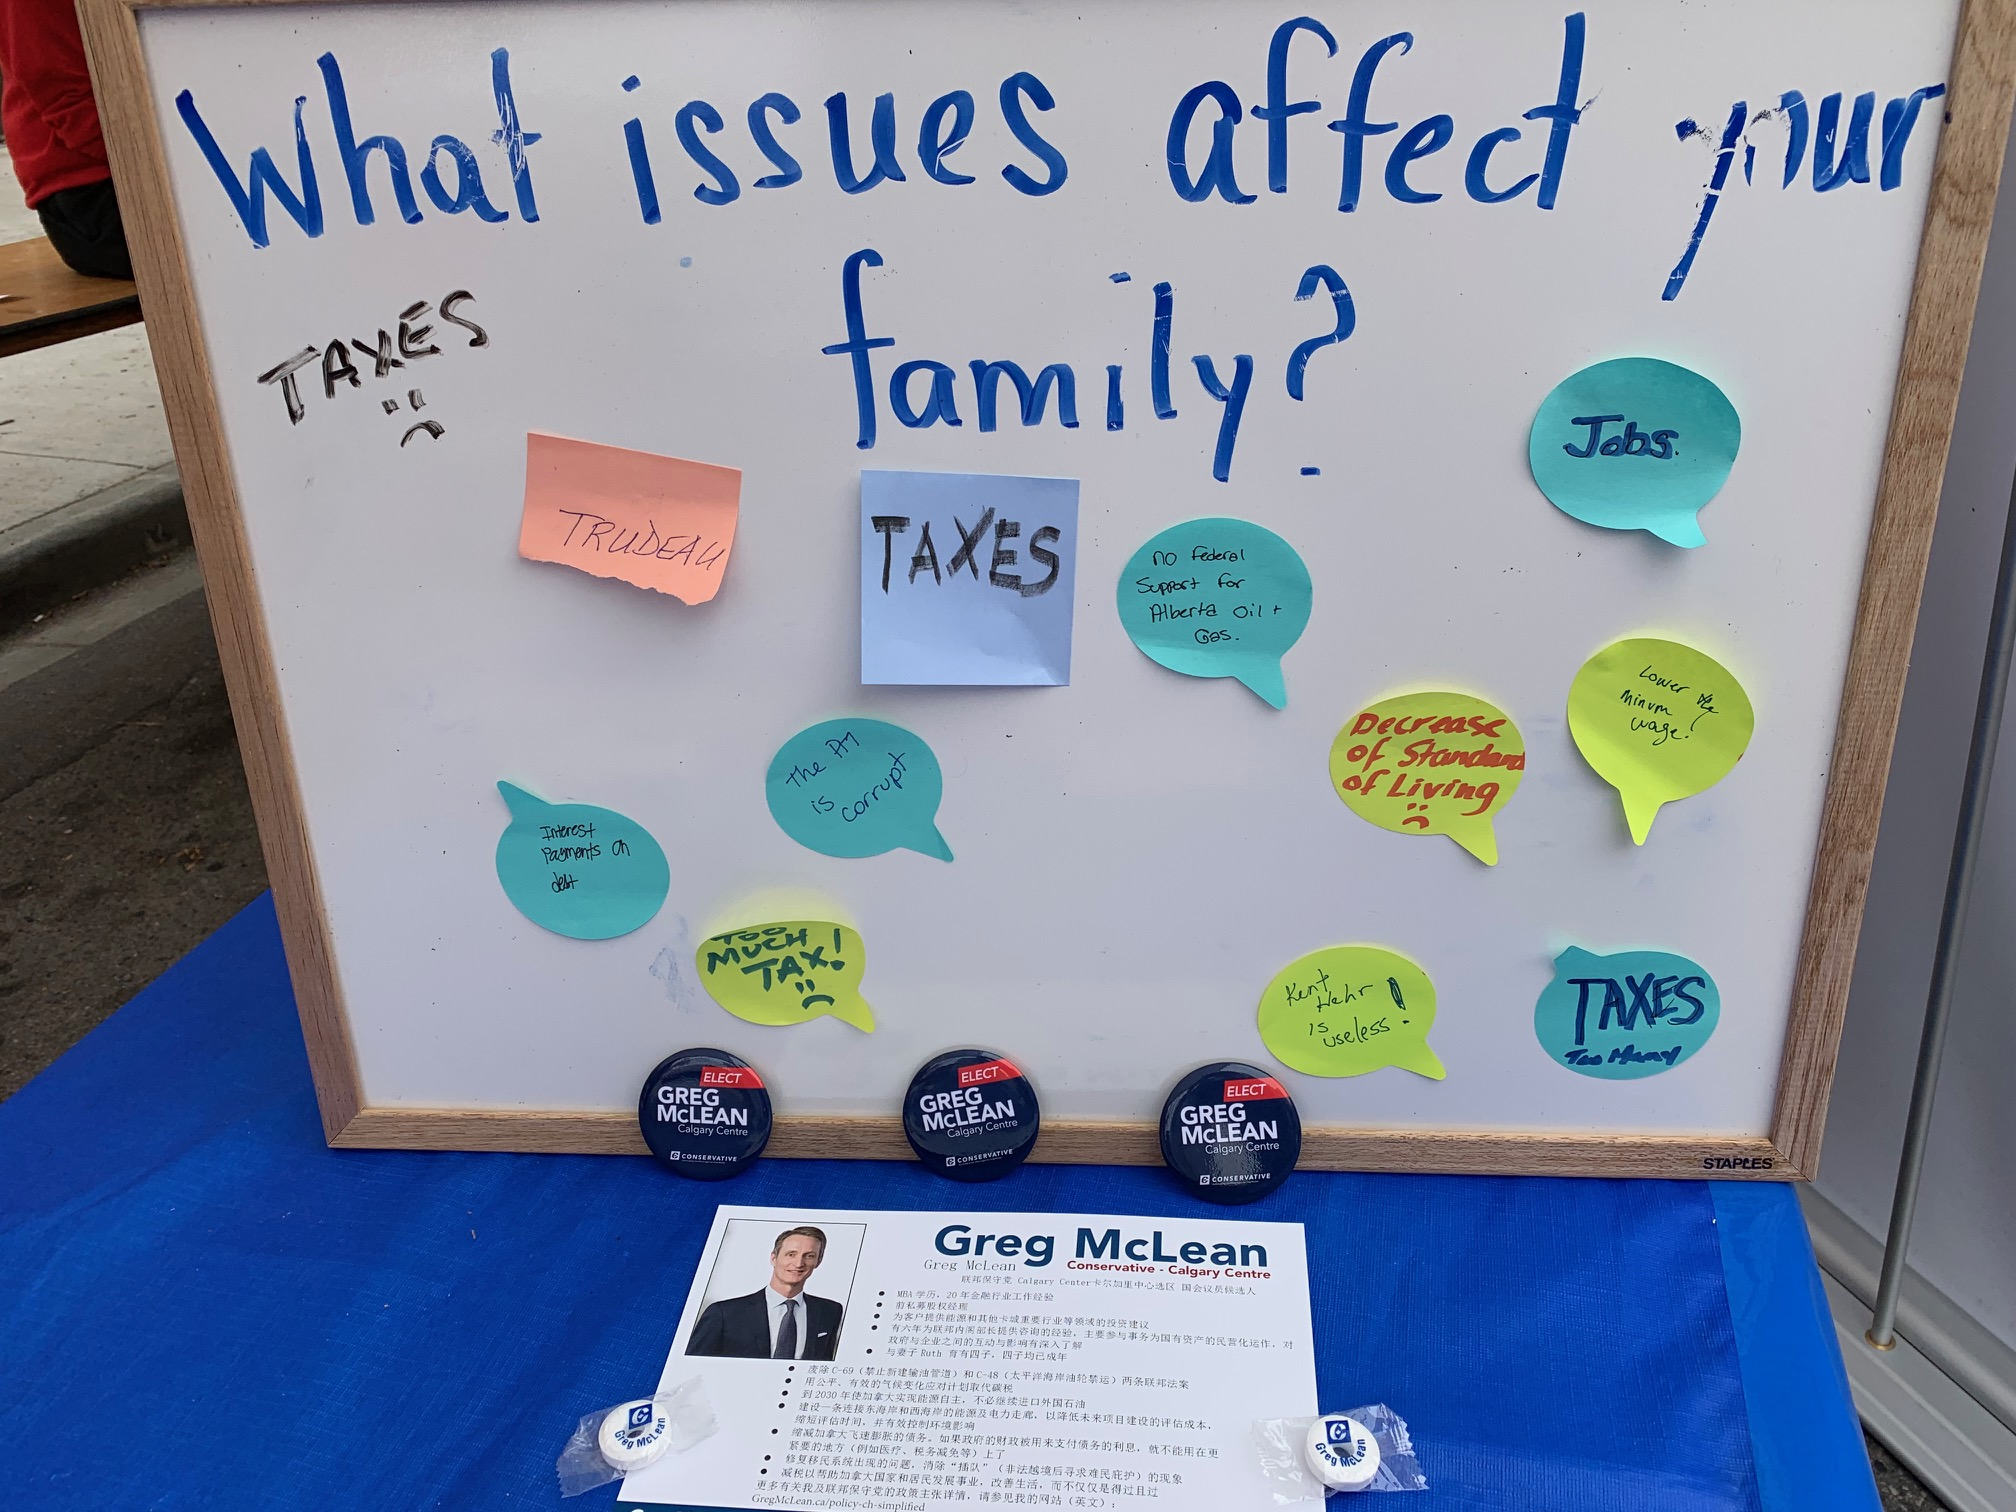 At the summer festivals, we have put a board in our tent and invited people to tell us what concerns them. Here is the board from the Chinese festival yesterday. Jobs and taxes play big.